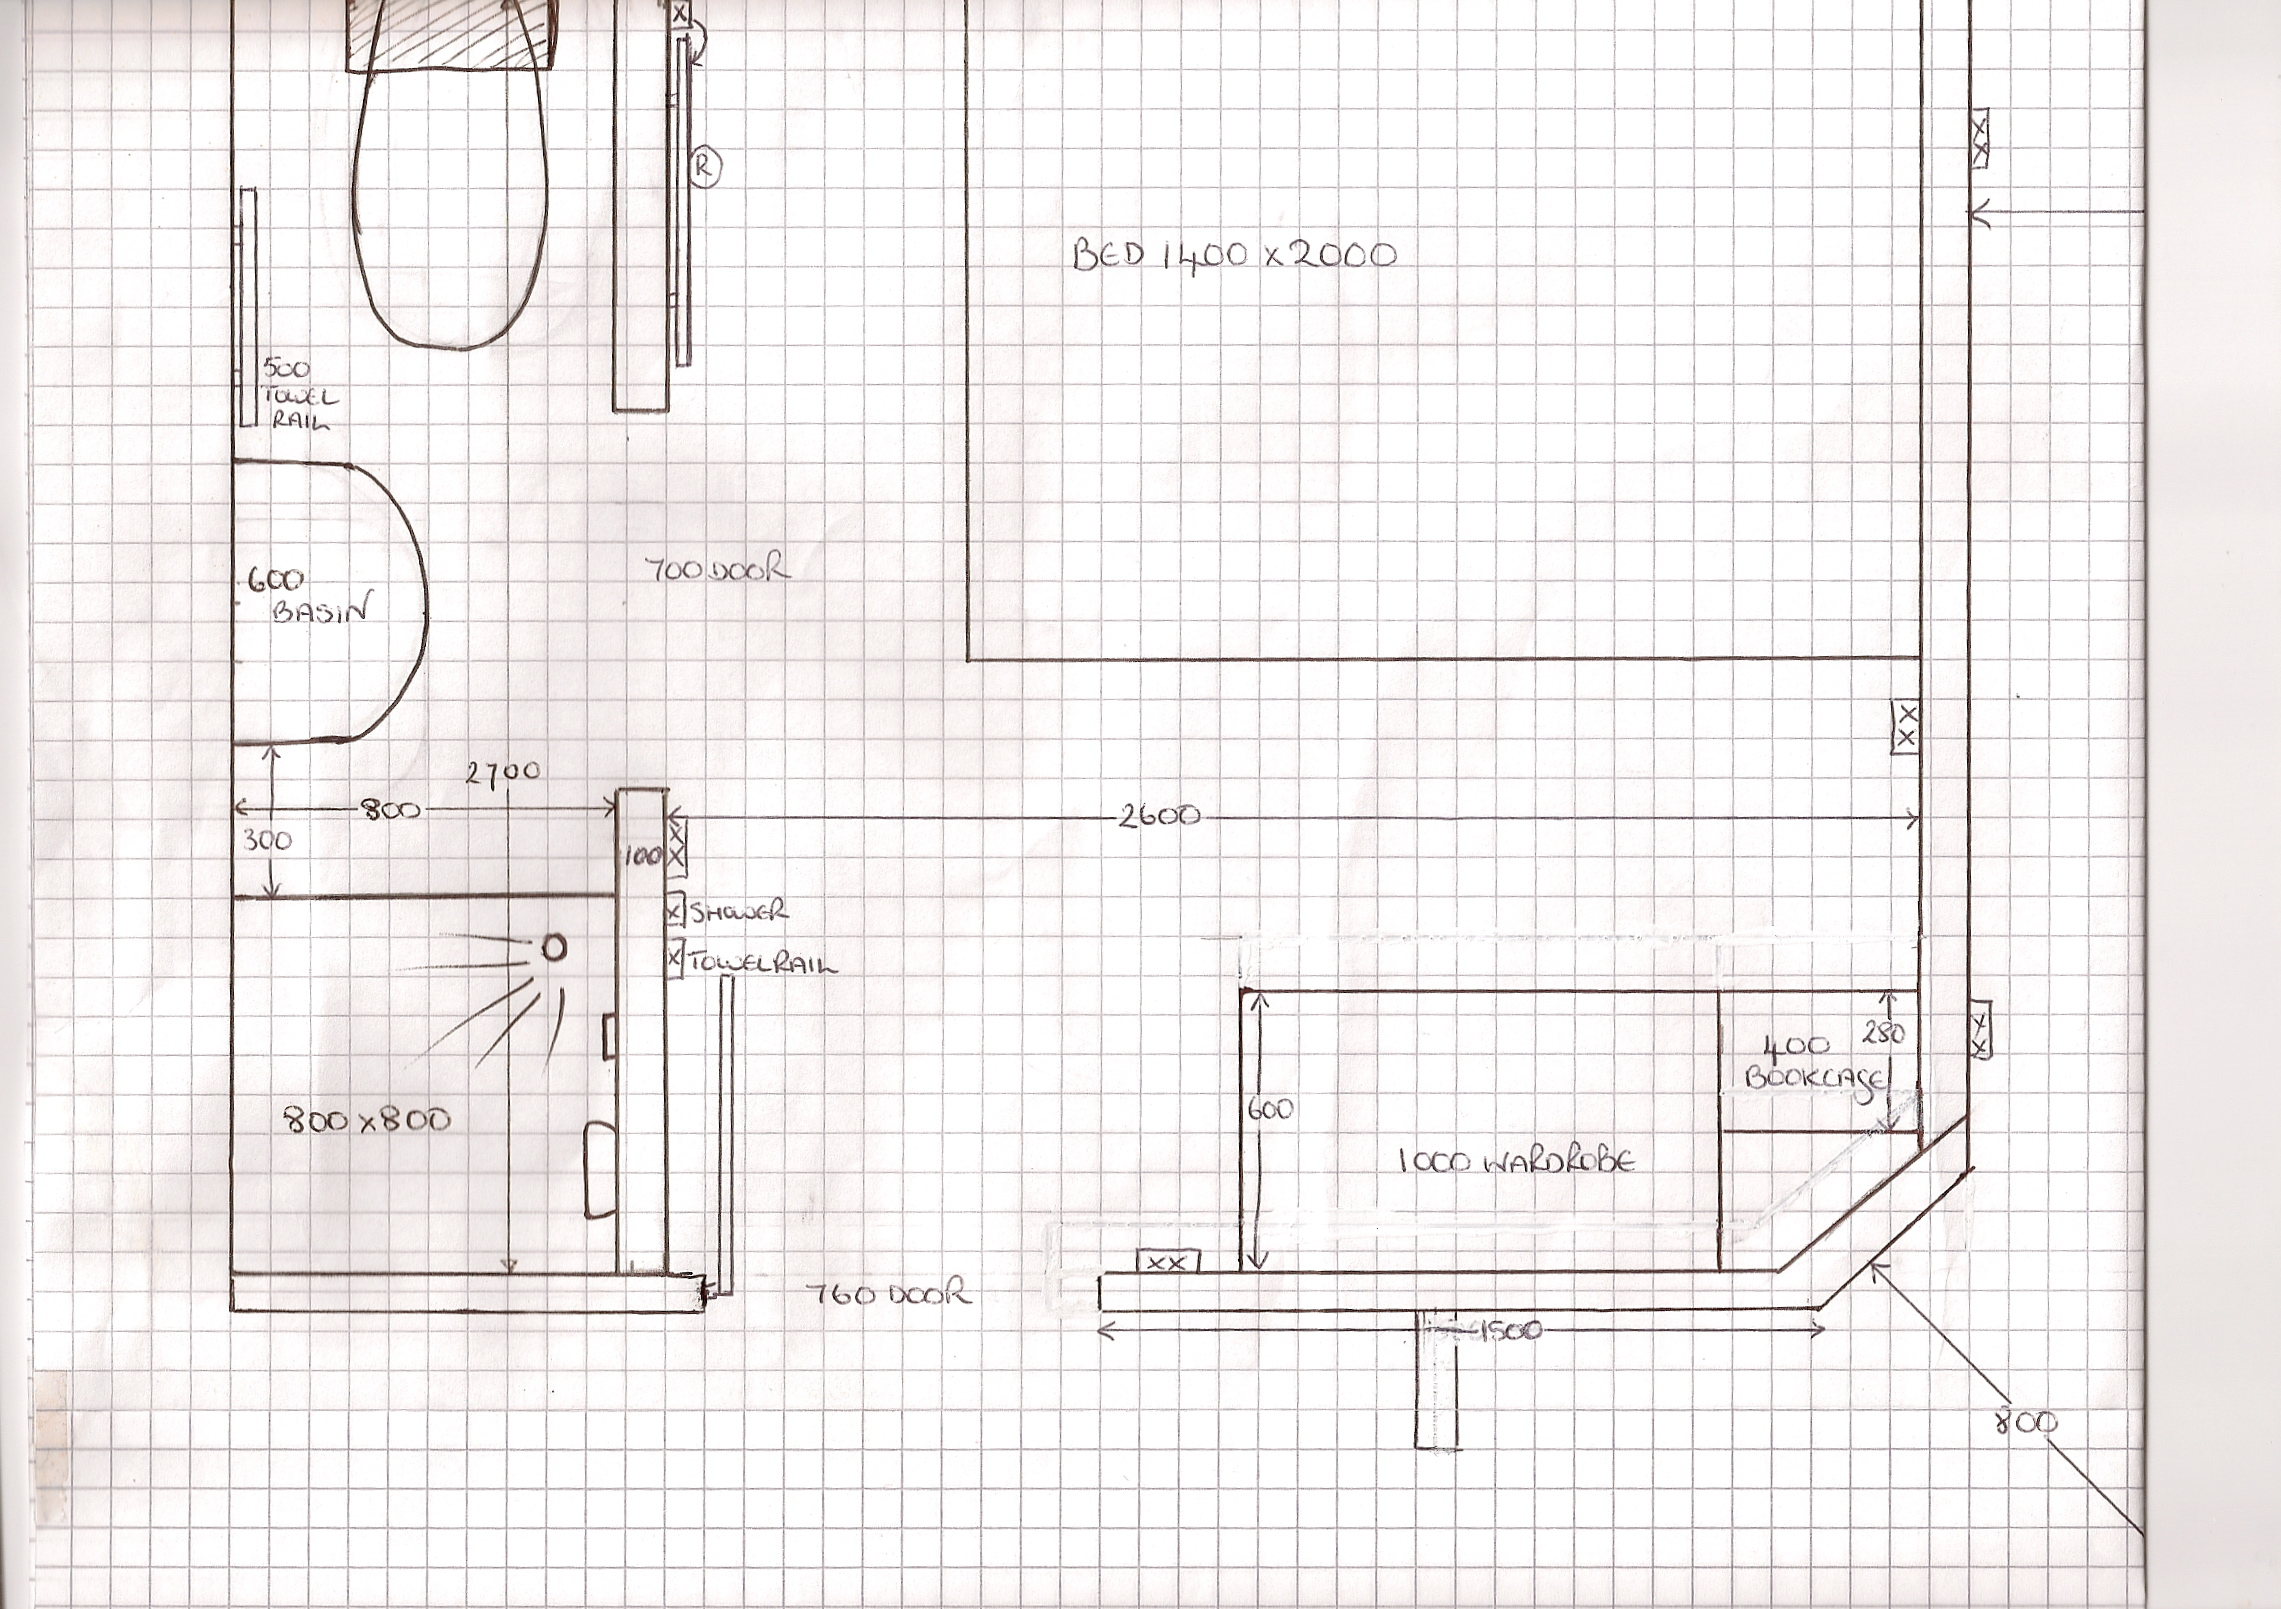 wet room layouts for small spaces rectangular bathroom designs